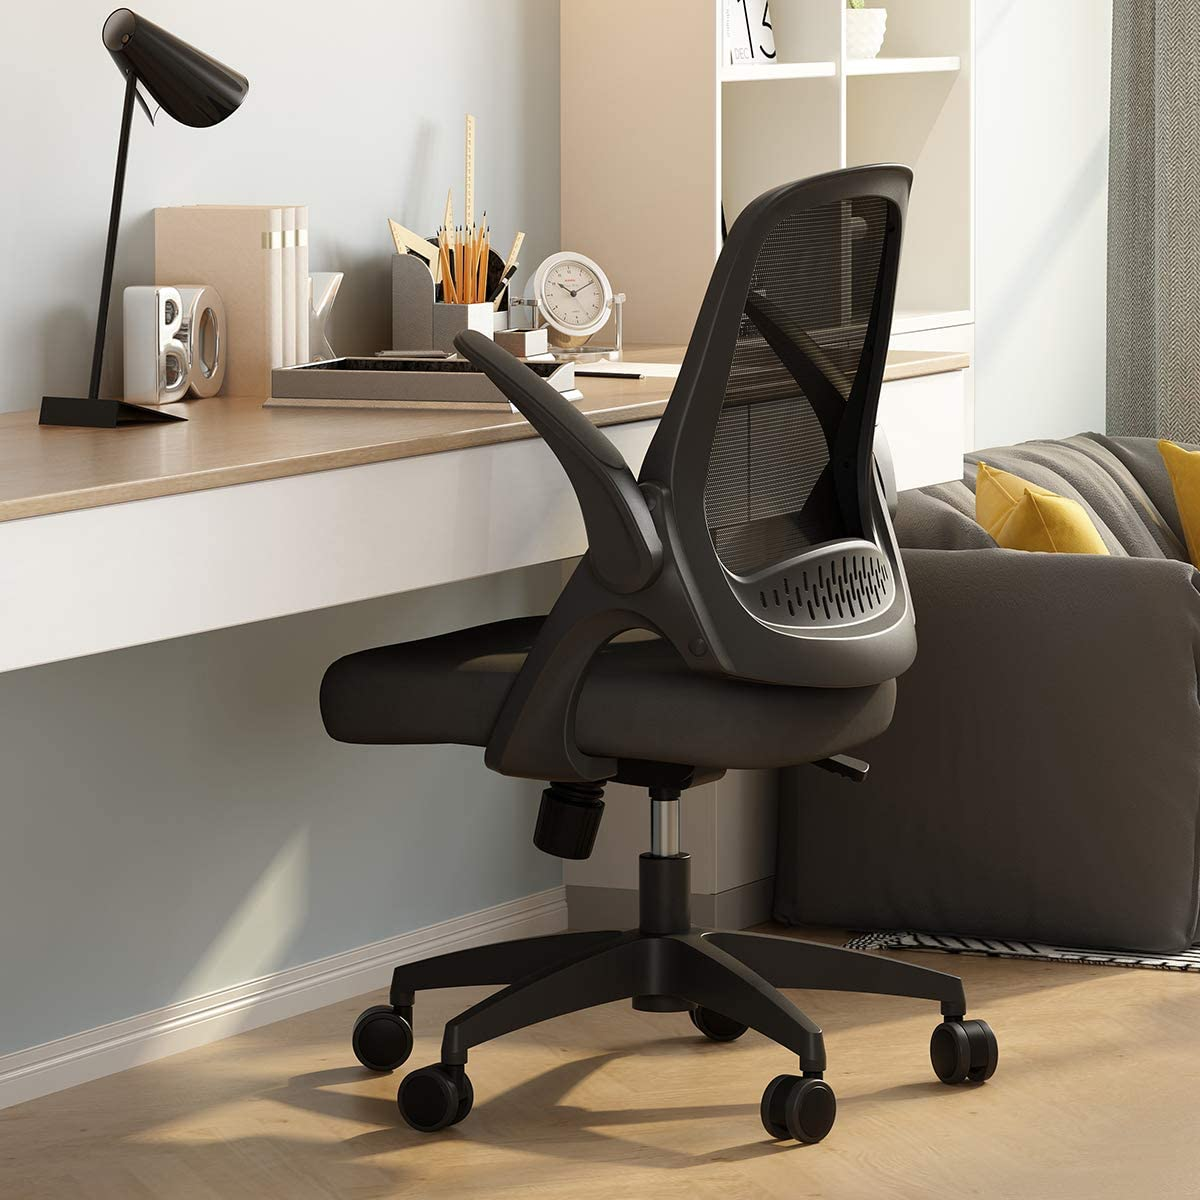 Hbada Office Task Desk Chair Limited time sale Swivel 5% OFF Fli with Comfort Home Chairs